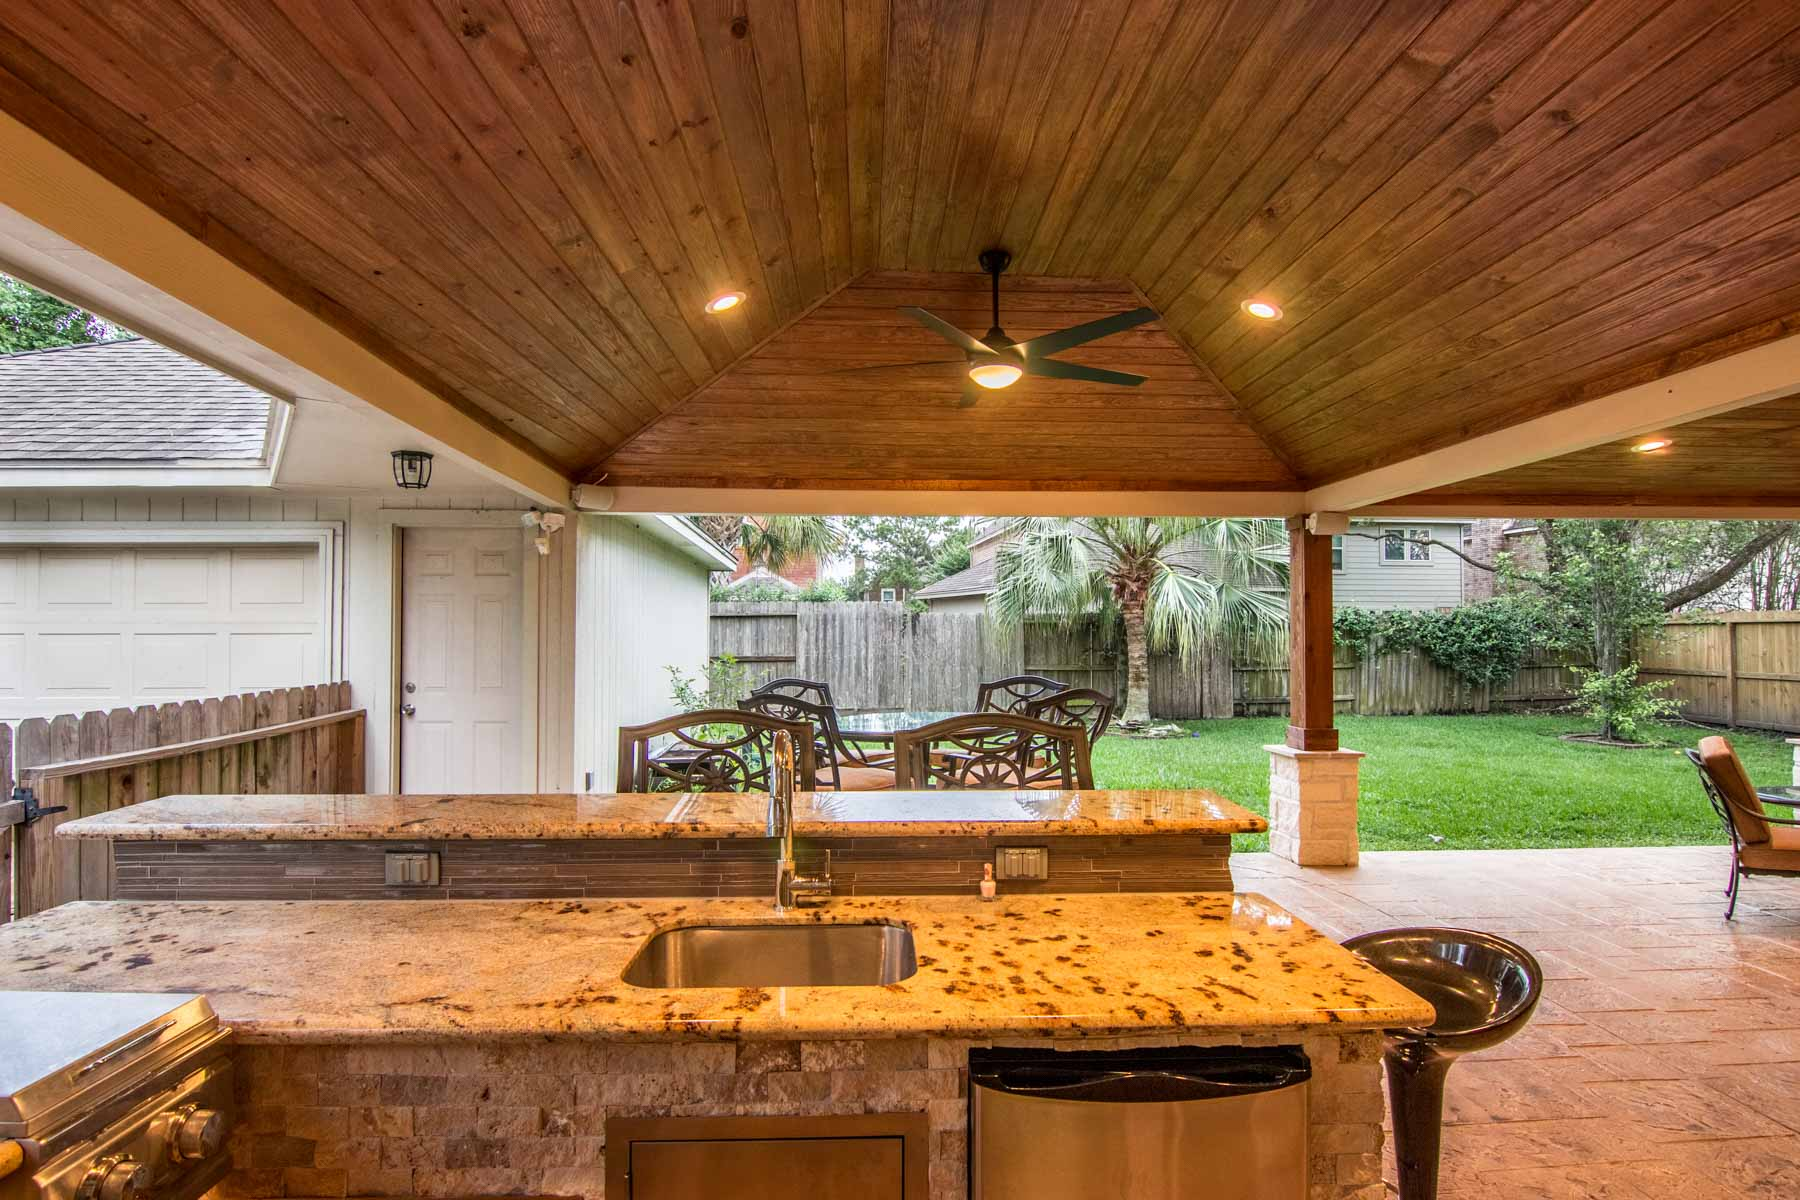 Outdoor Kitchens - HHI Patio Covers Houston on Outdoor Kitchen Patio id=33812